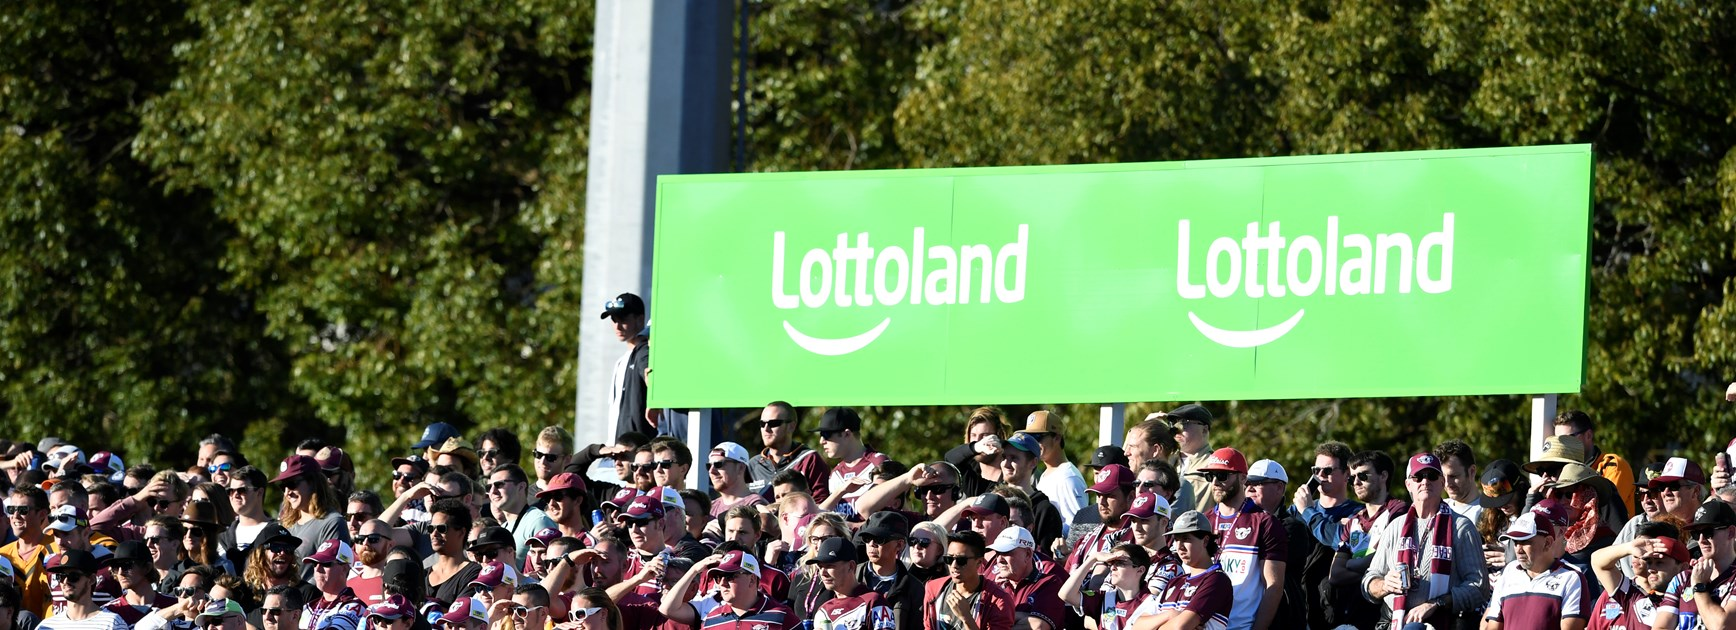 Super Sunday at Lottoland